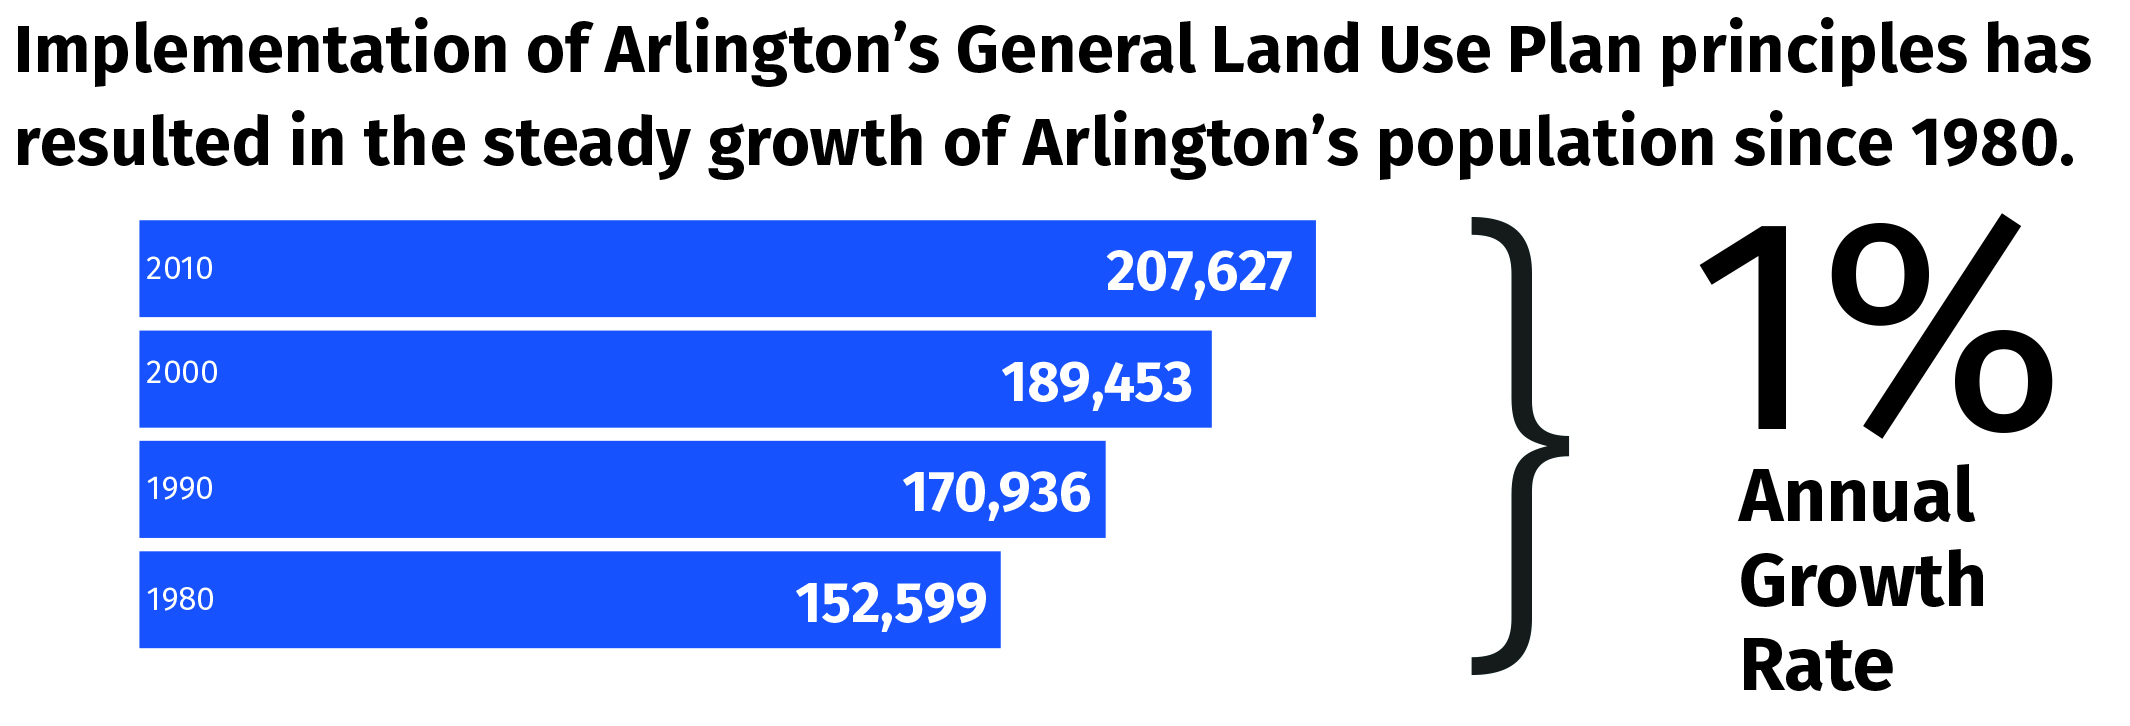 Arlington's population has grown at about 1% per year, starting at 152,599 in 1980 and climbing to 207,627 in 2010.